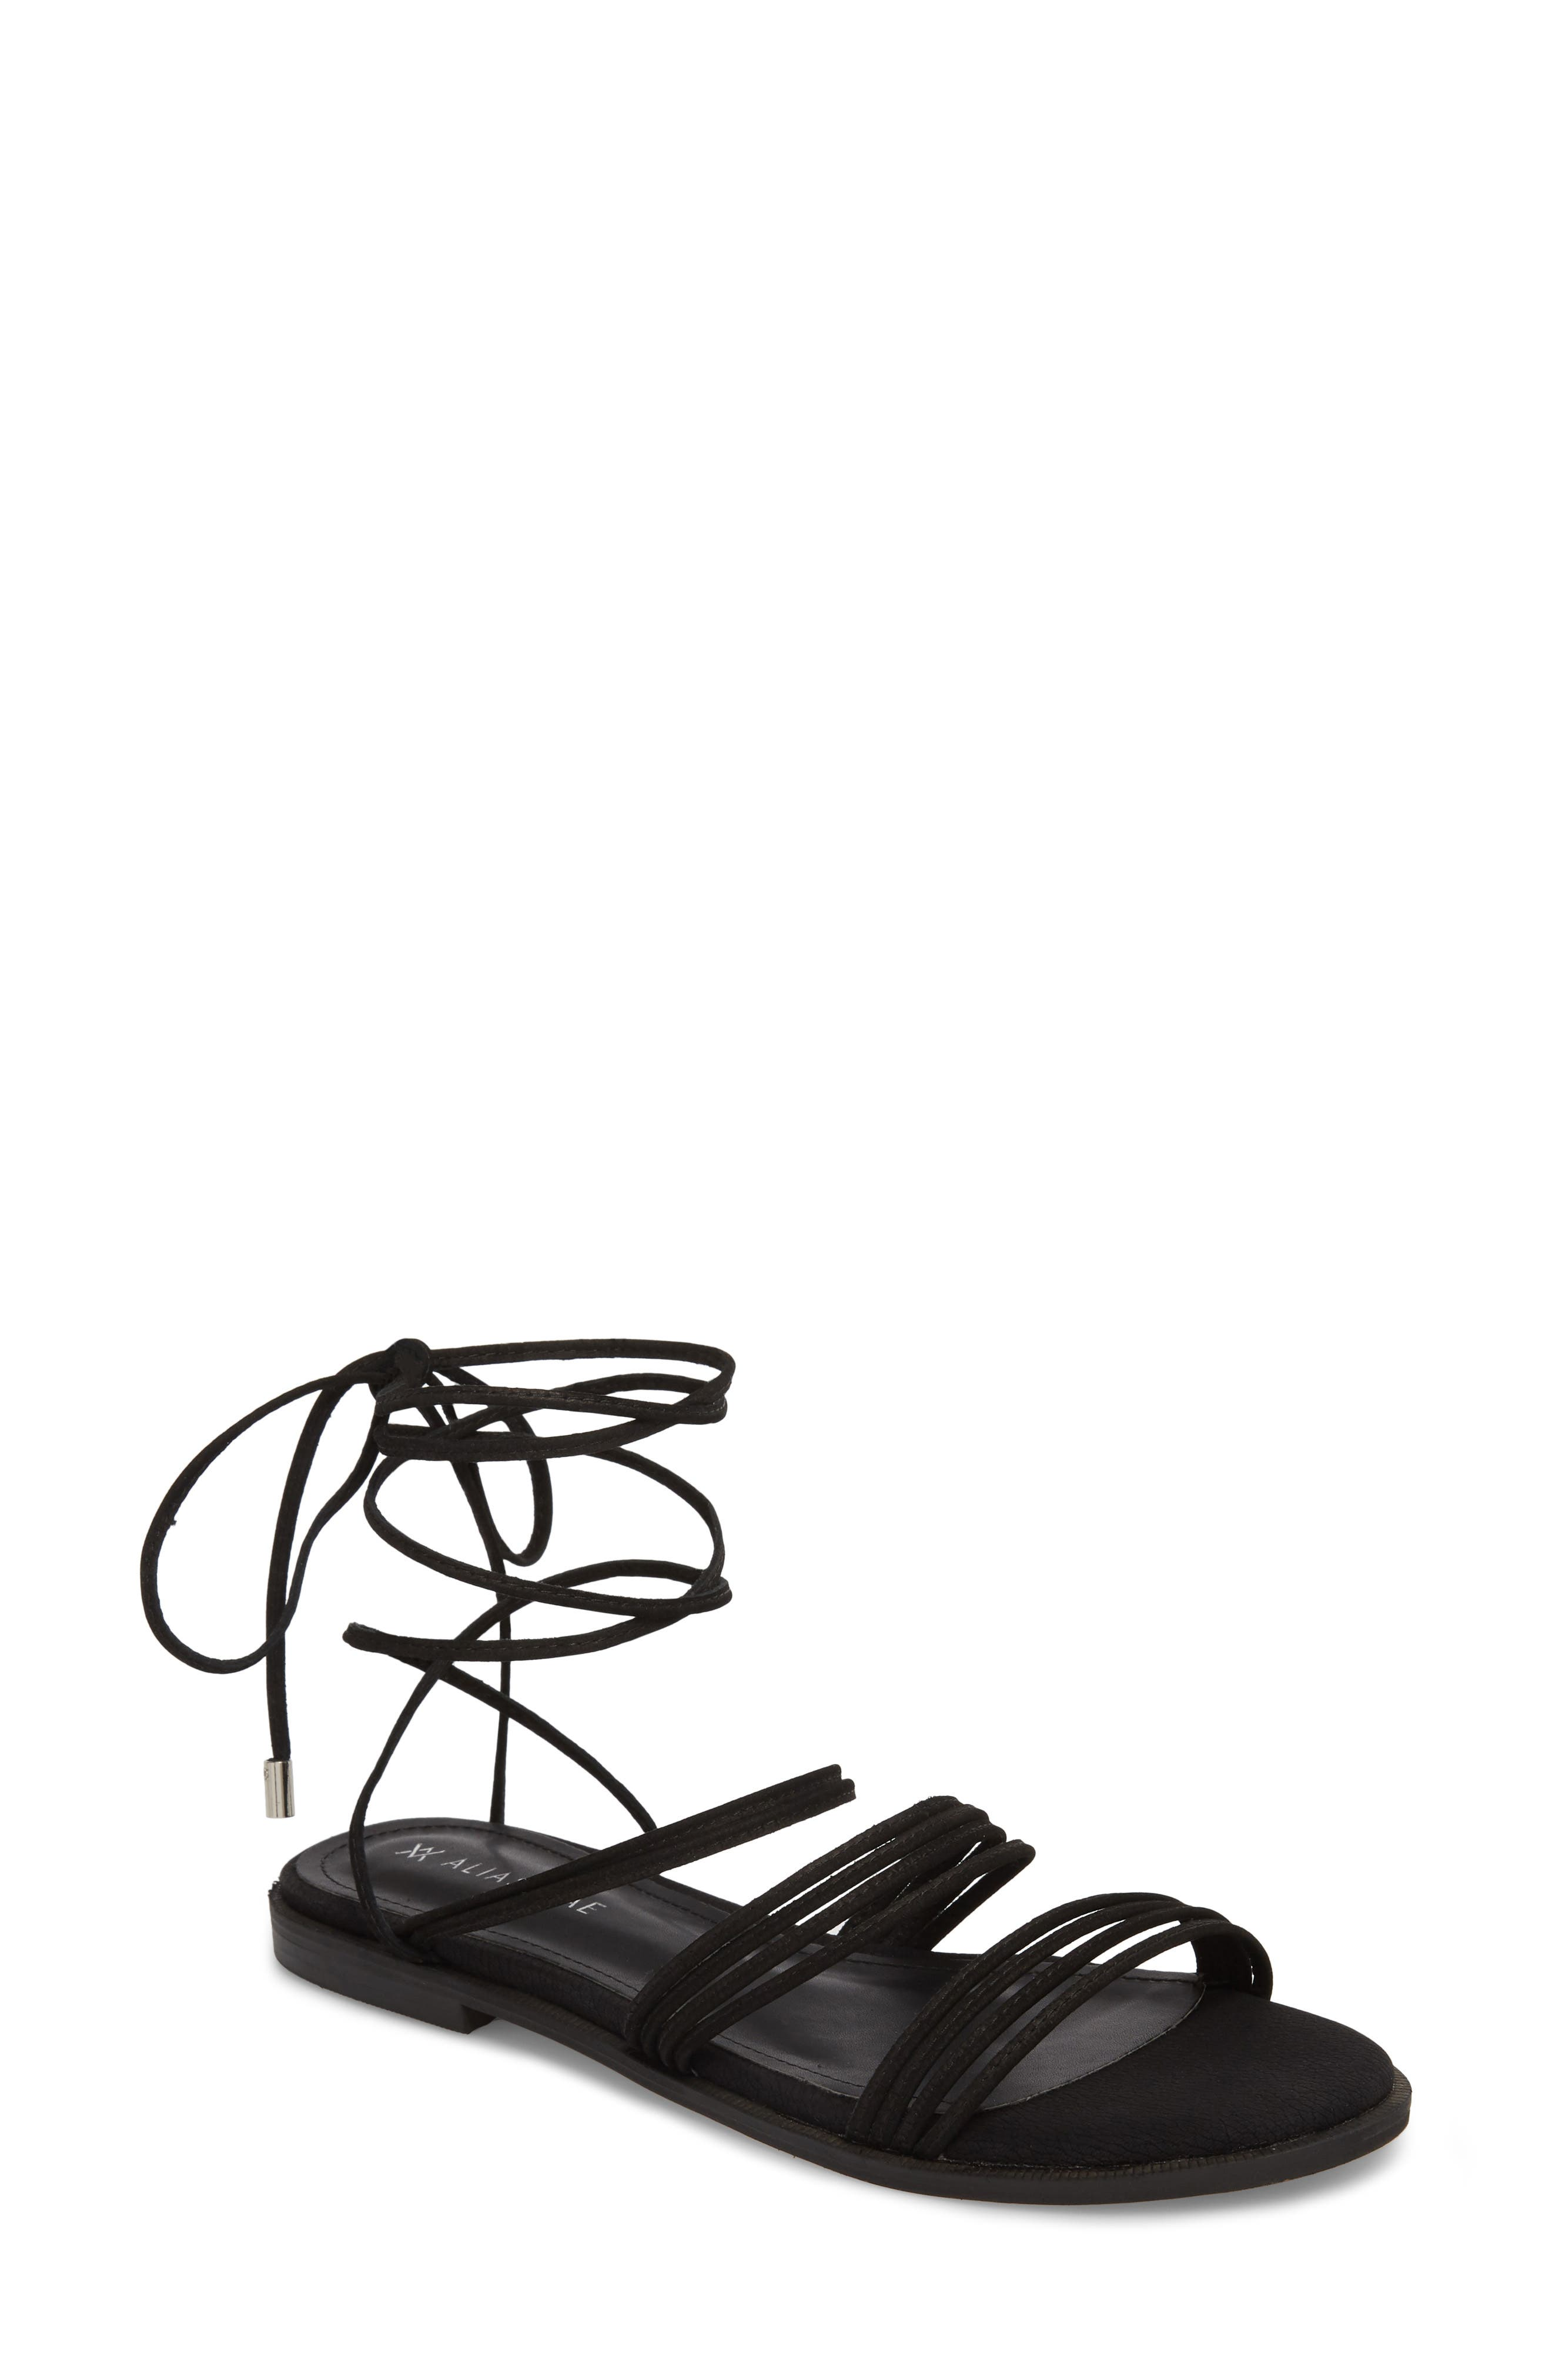 Theory Strappy Flat Sandal,                         Main,                         color,